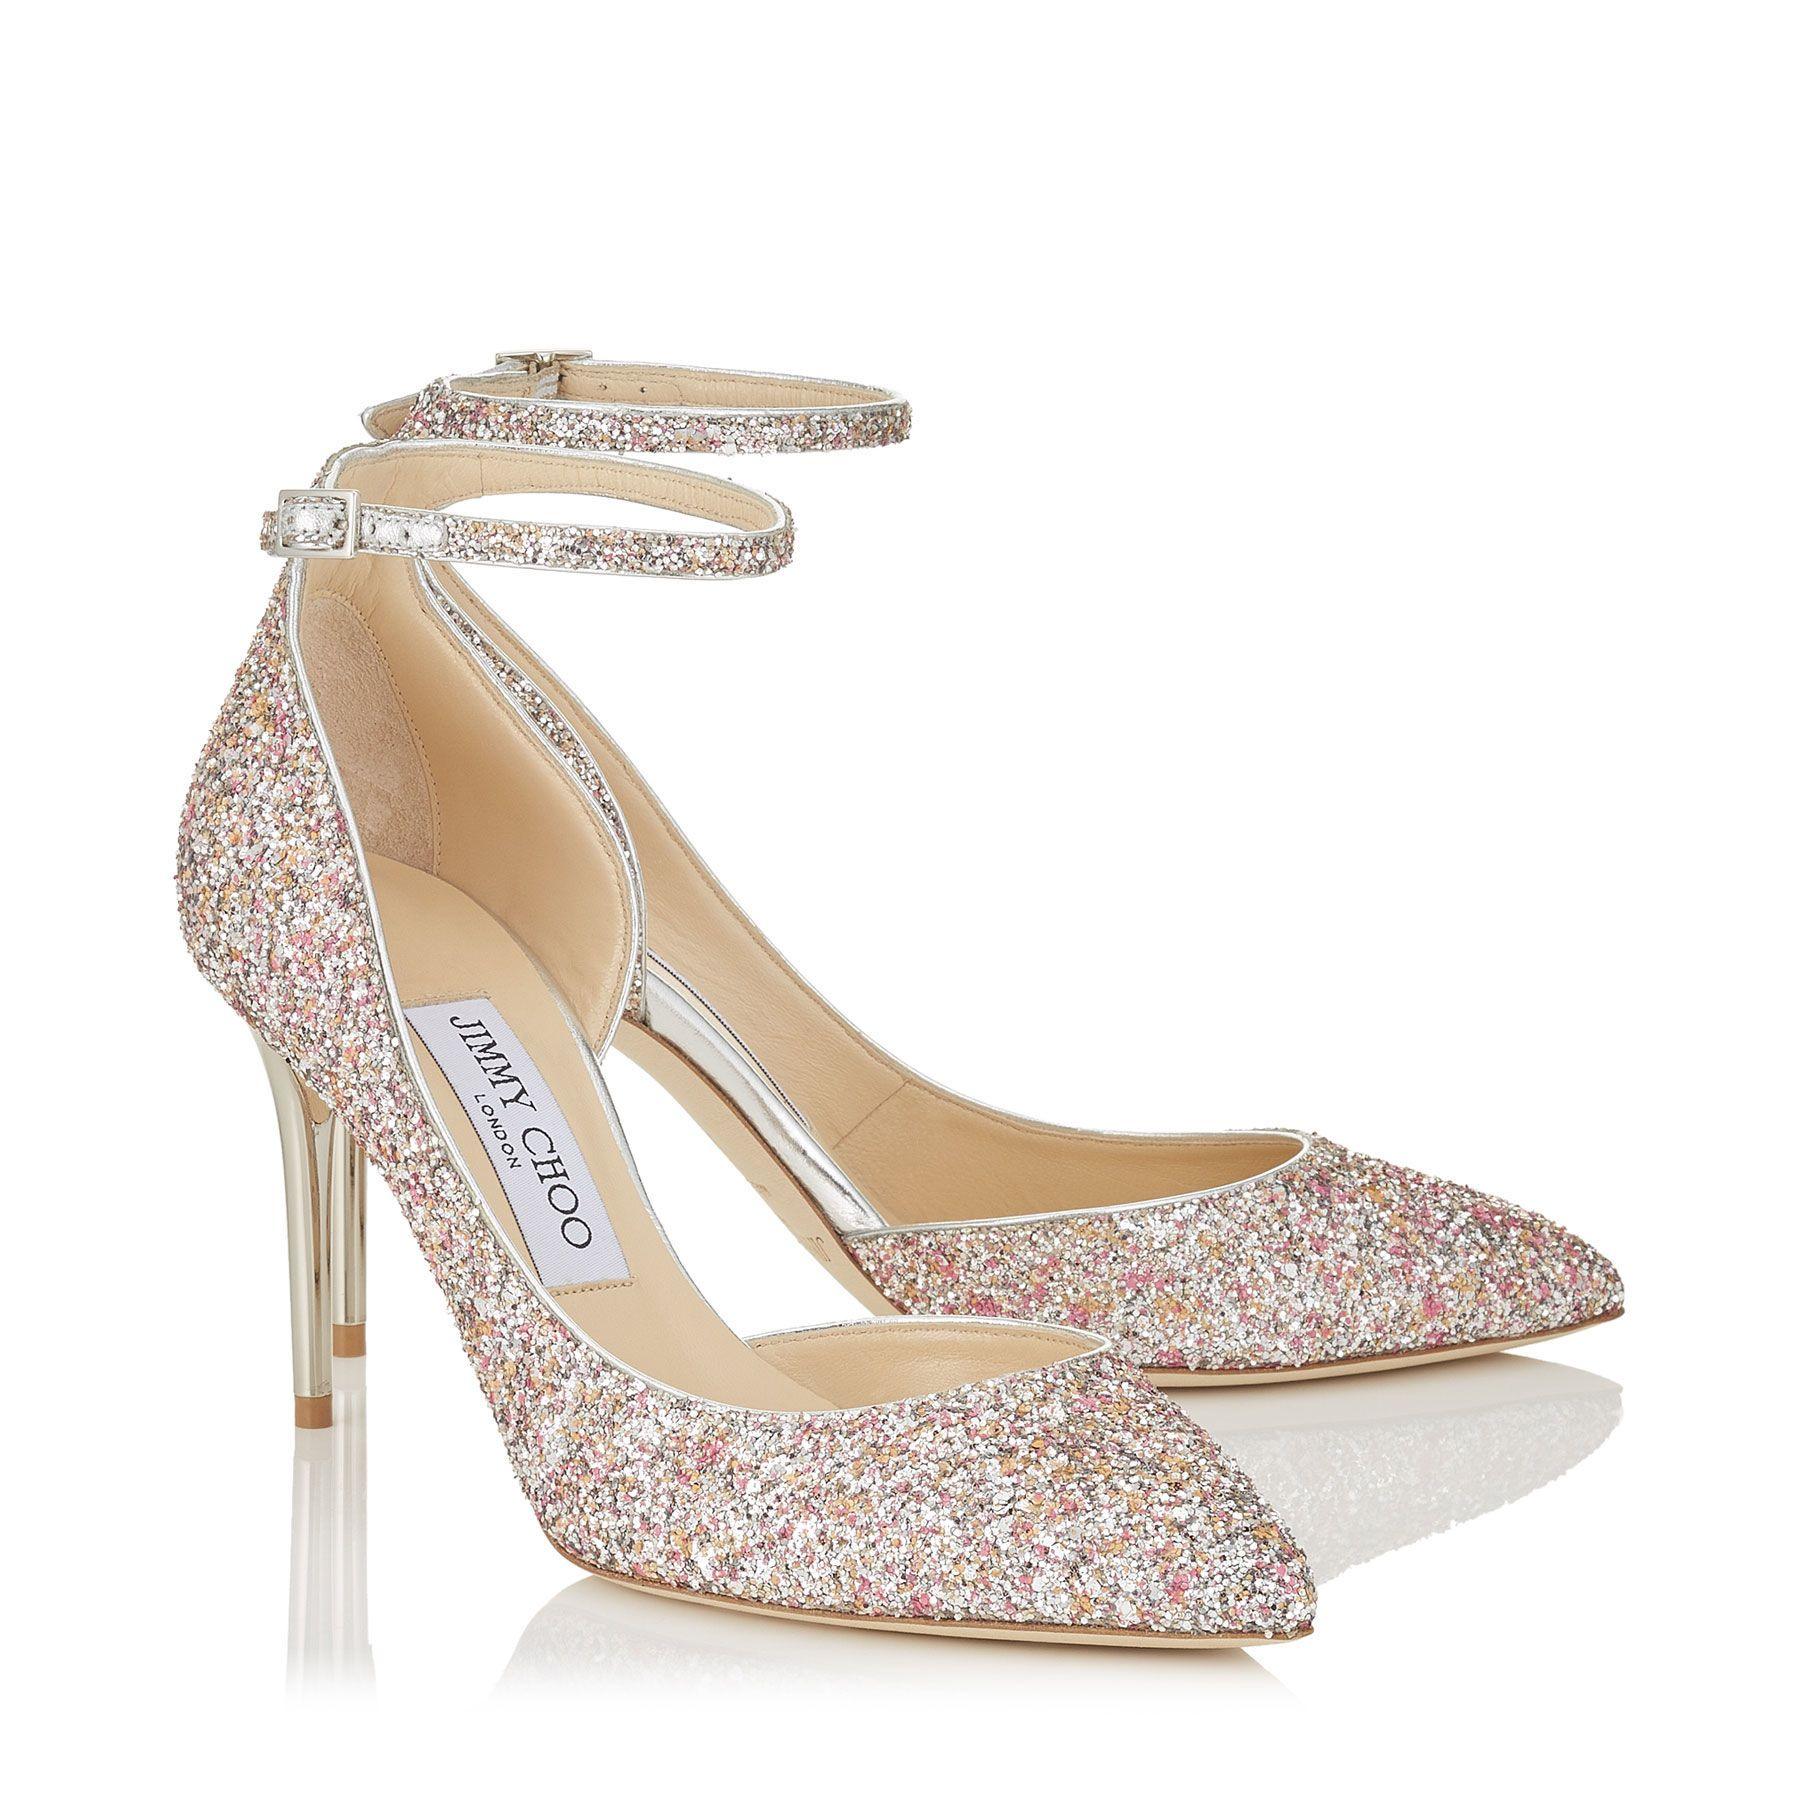 Camellia Mix Speckled Glitter Pointy Toe Pumps Lucy 85